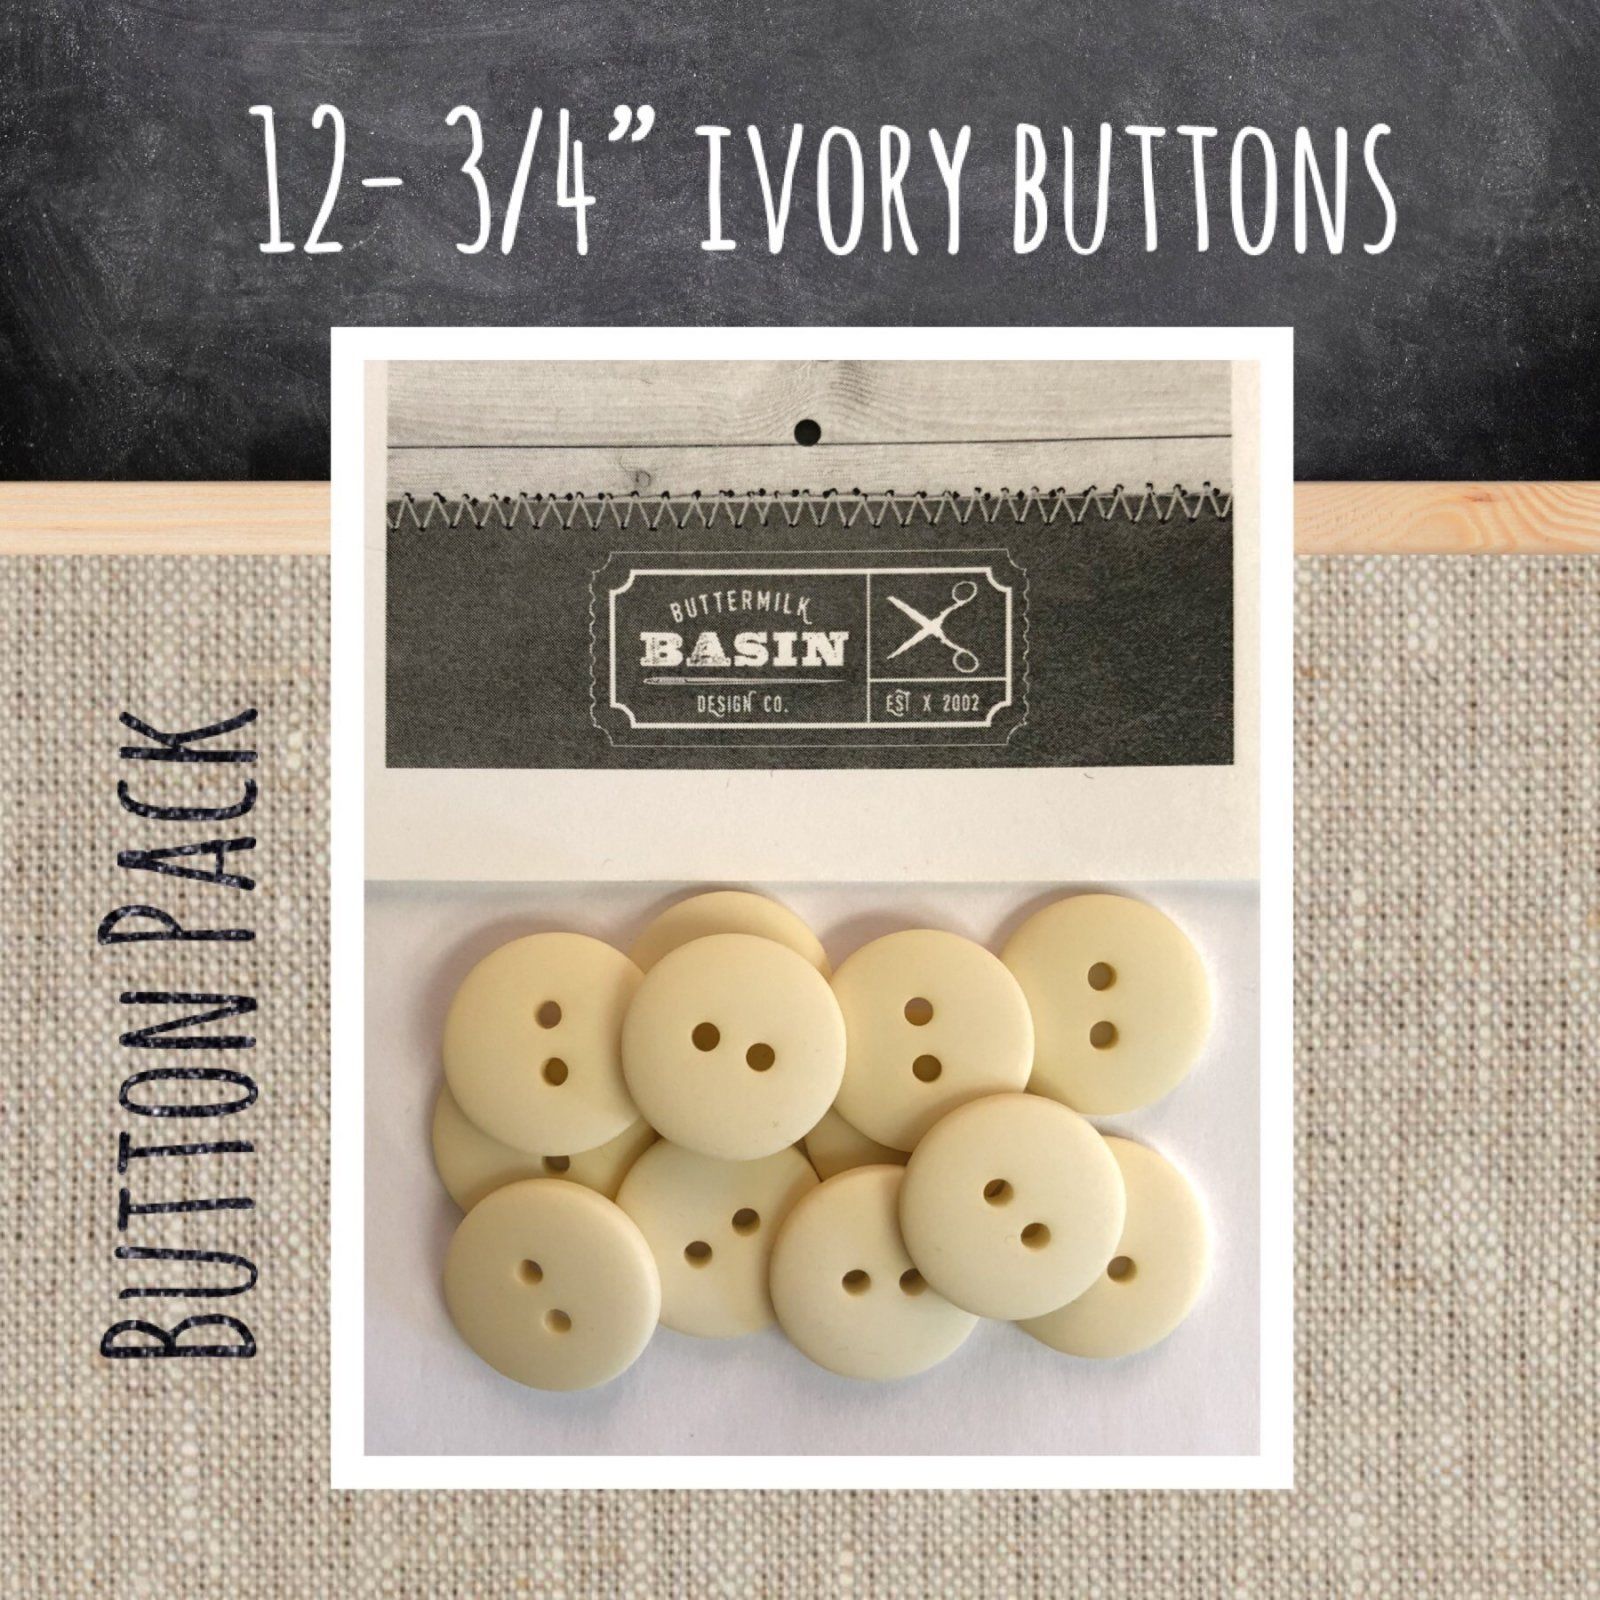 3/4 Ivory Button Pack